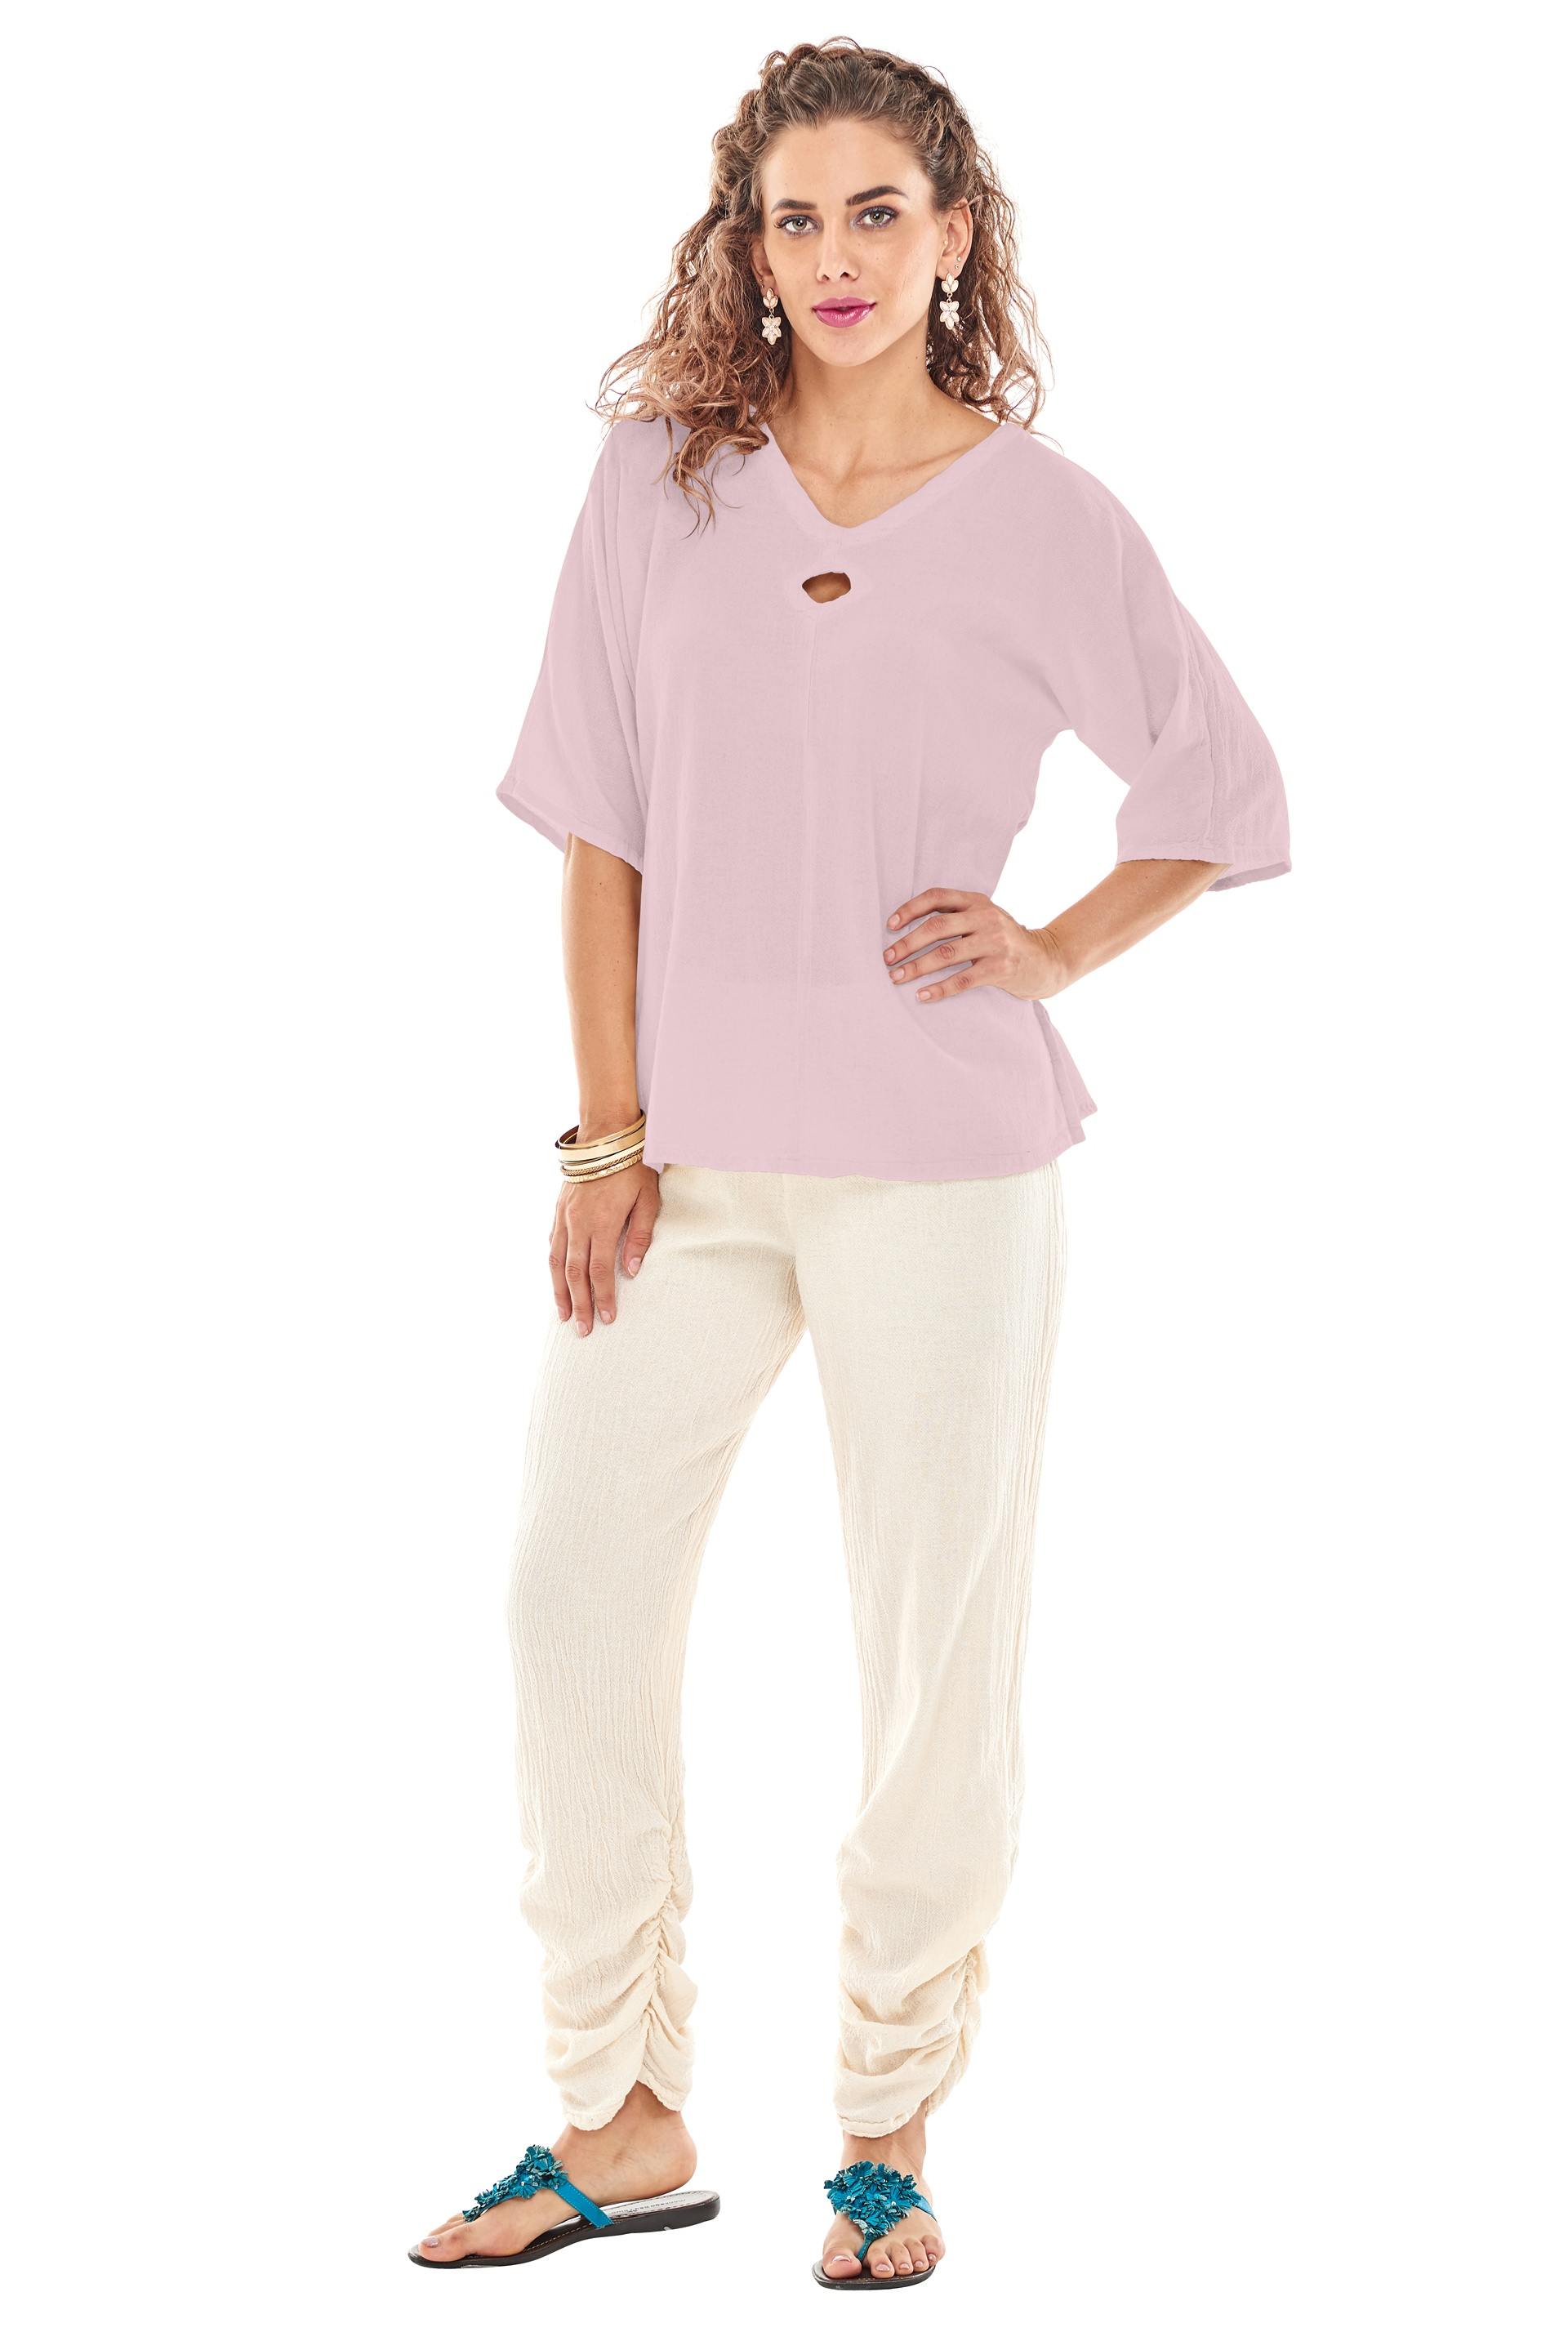 Top 100 Cute Girls Hairstyles: Oh My Gauze Coco Blouse Lagenlook Tunic Top 100% Cotton